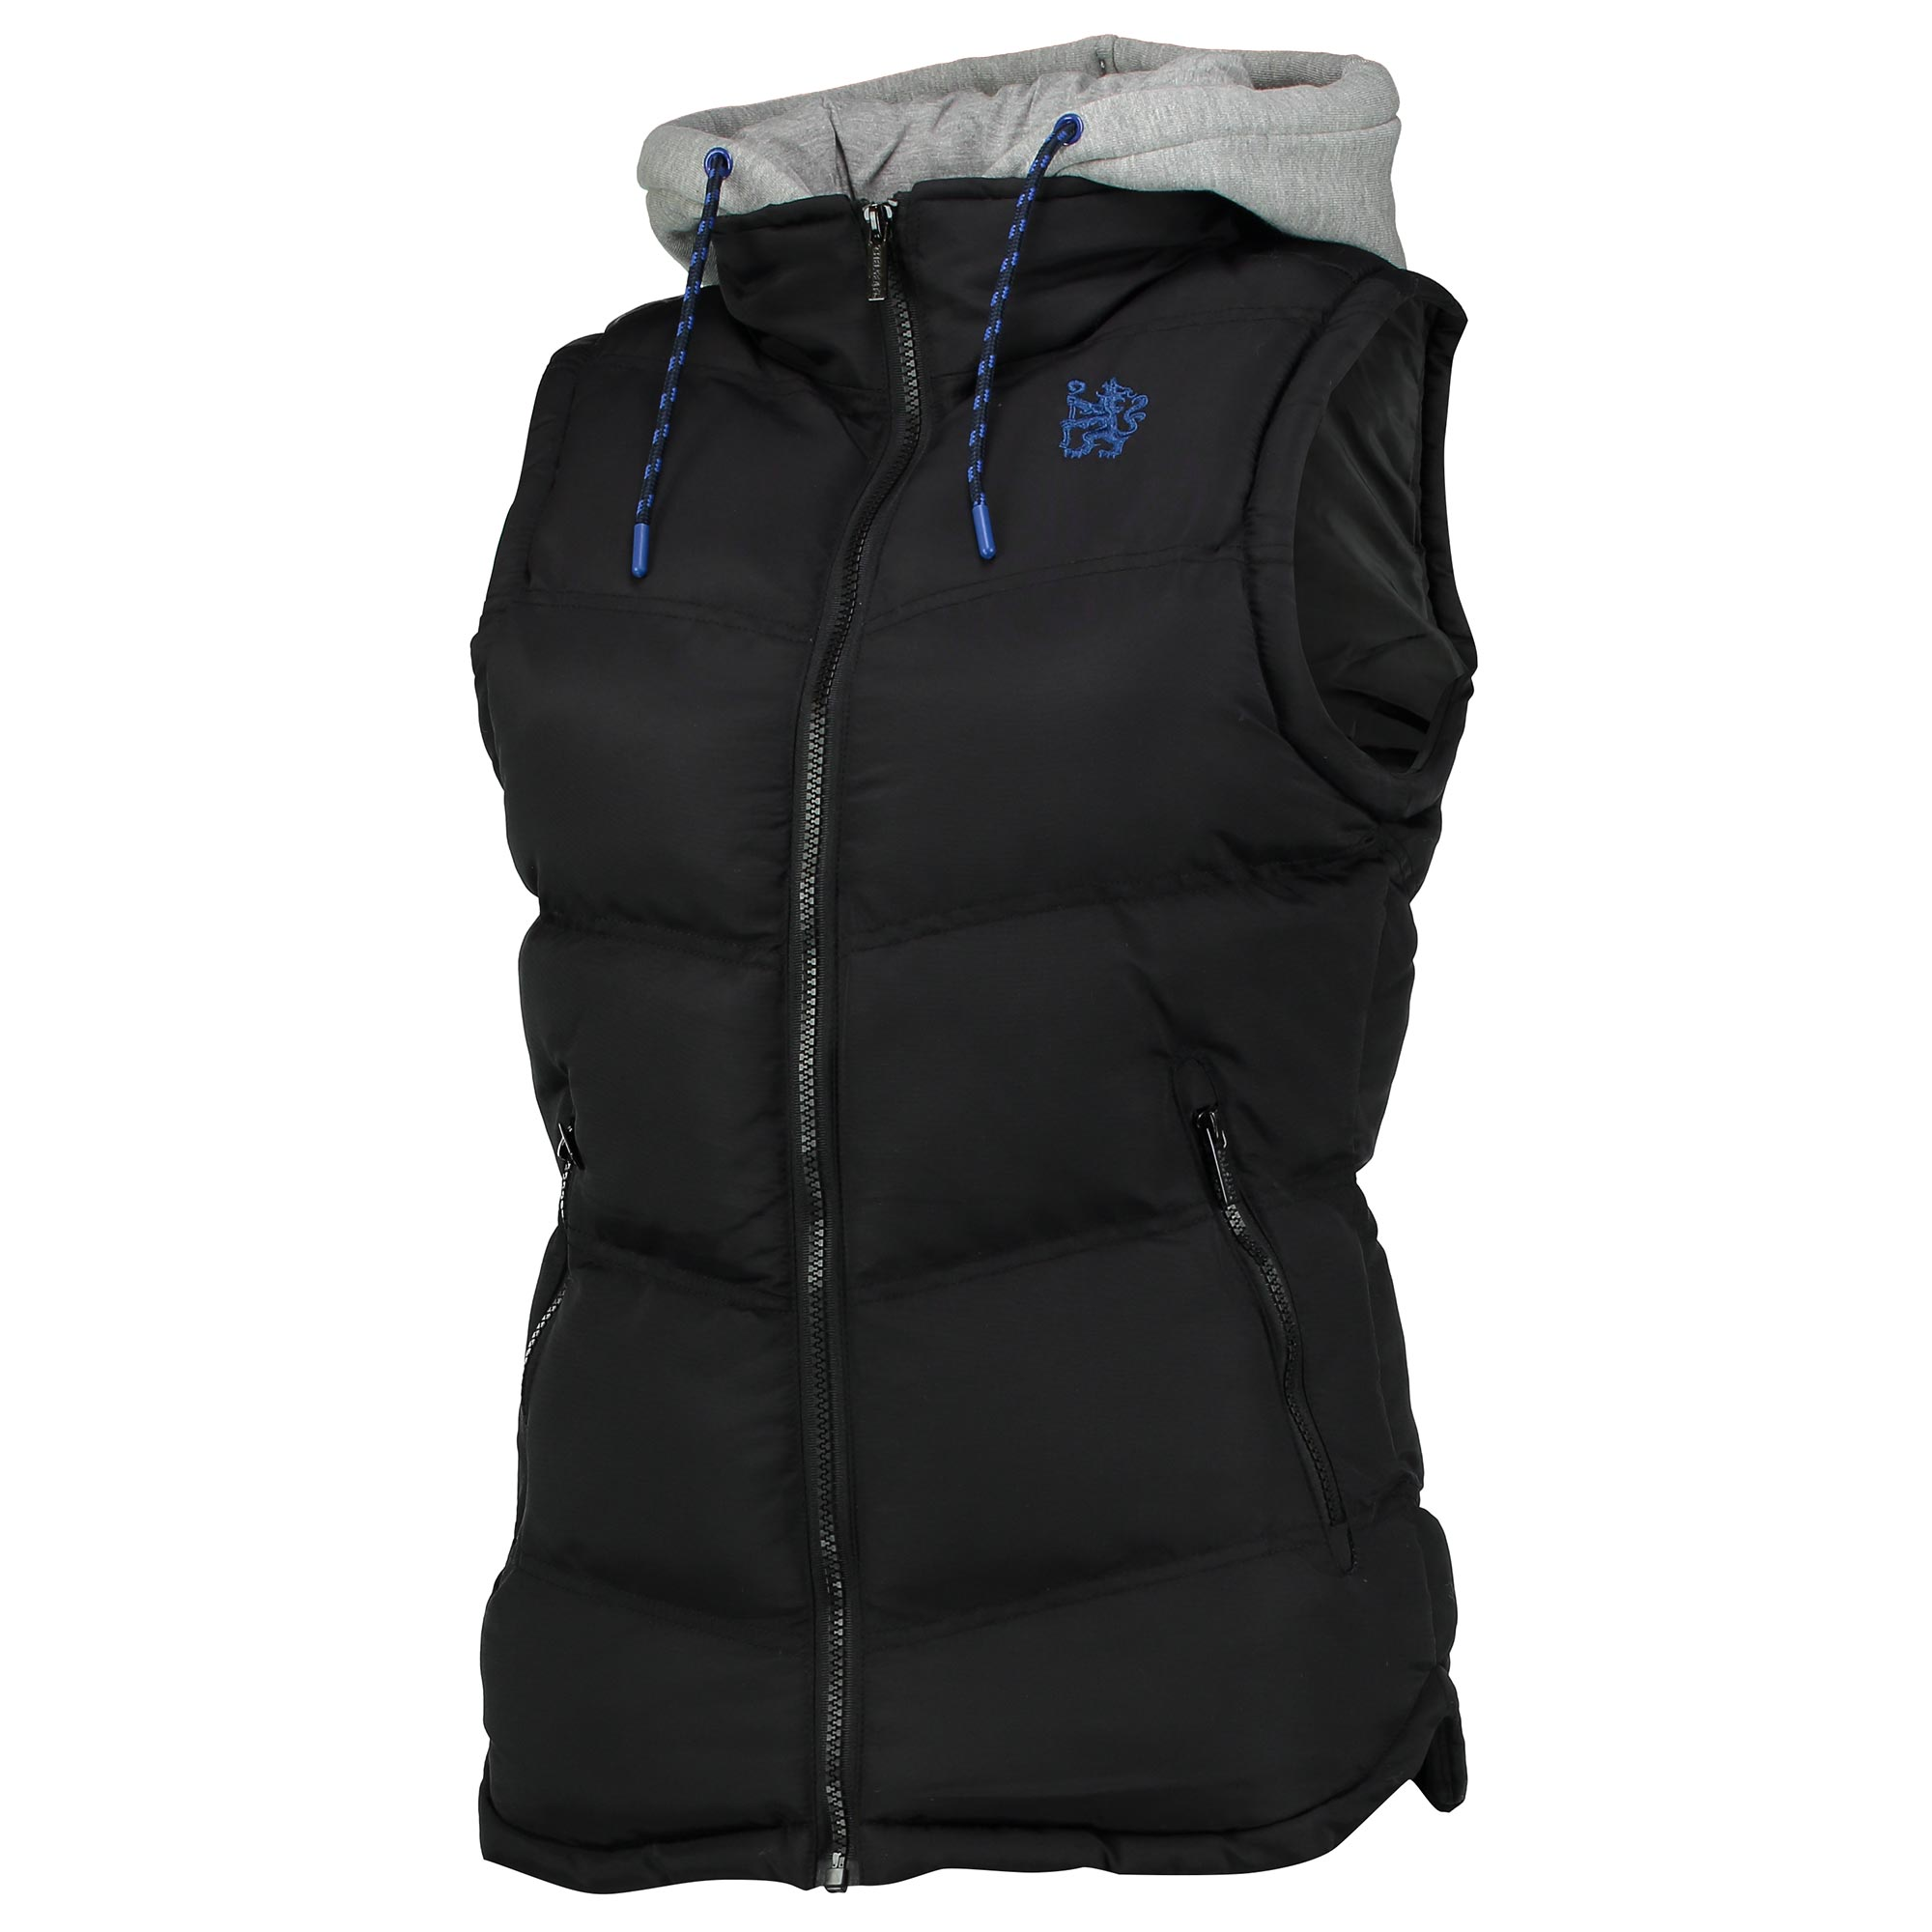 Chelsea Hooded Gilet - Black - Womens